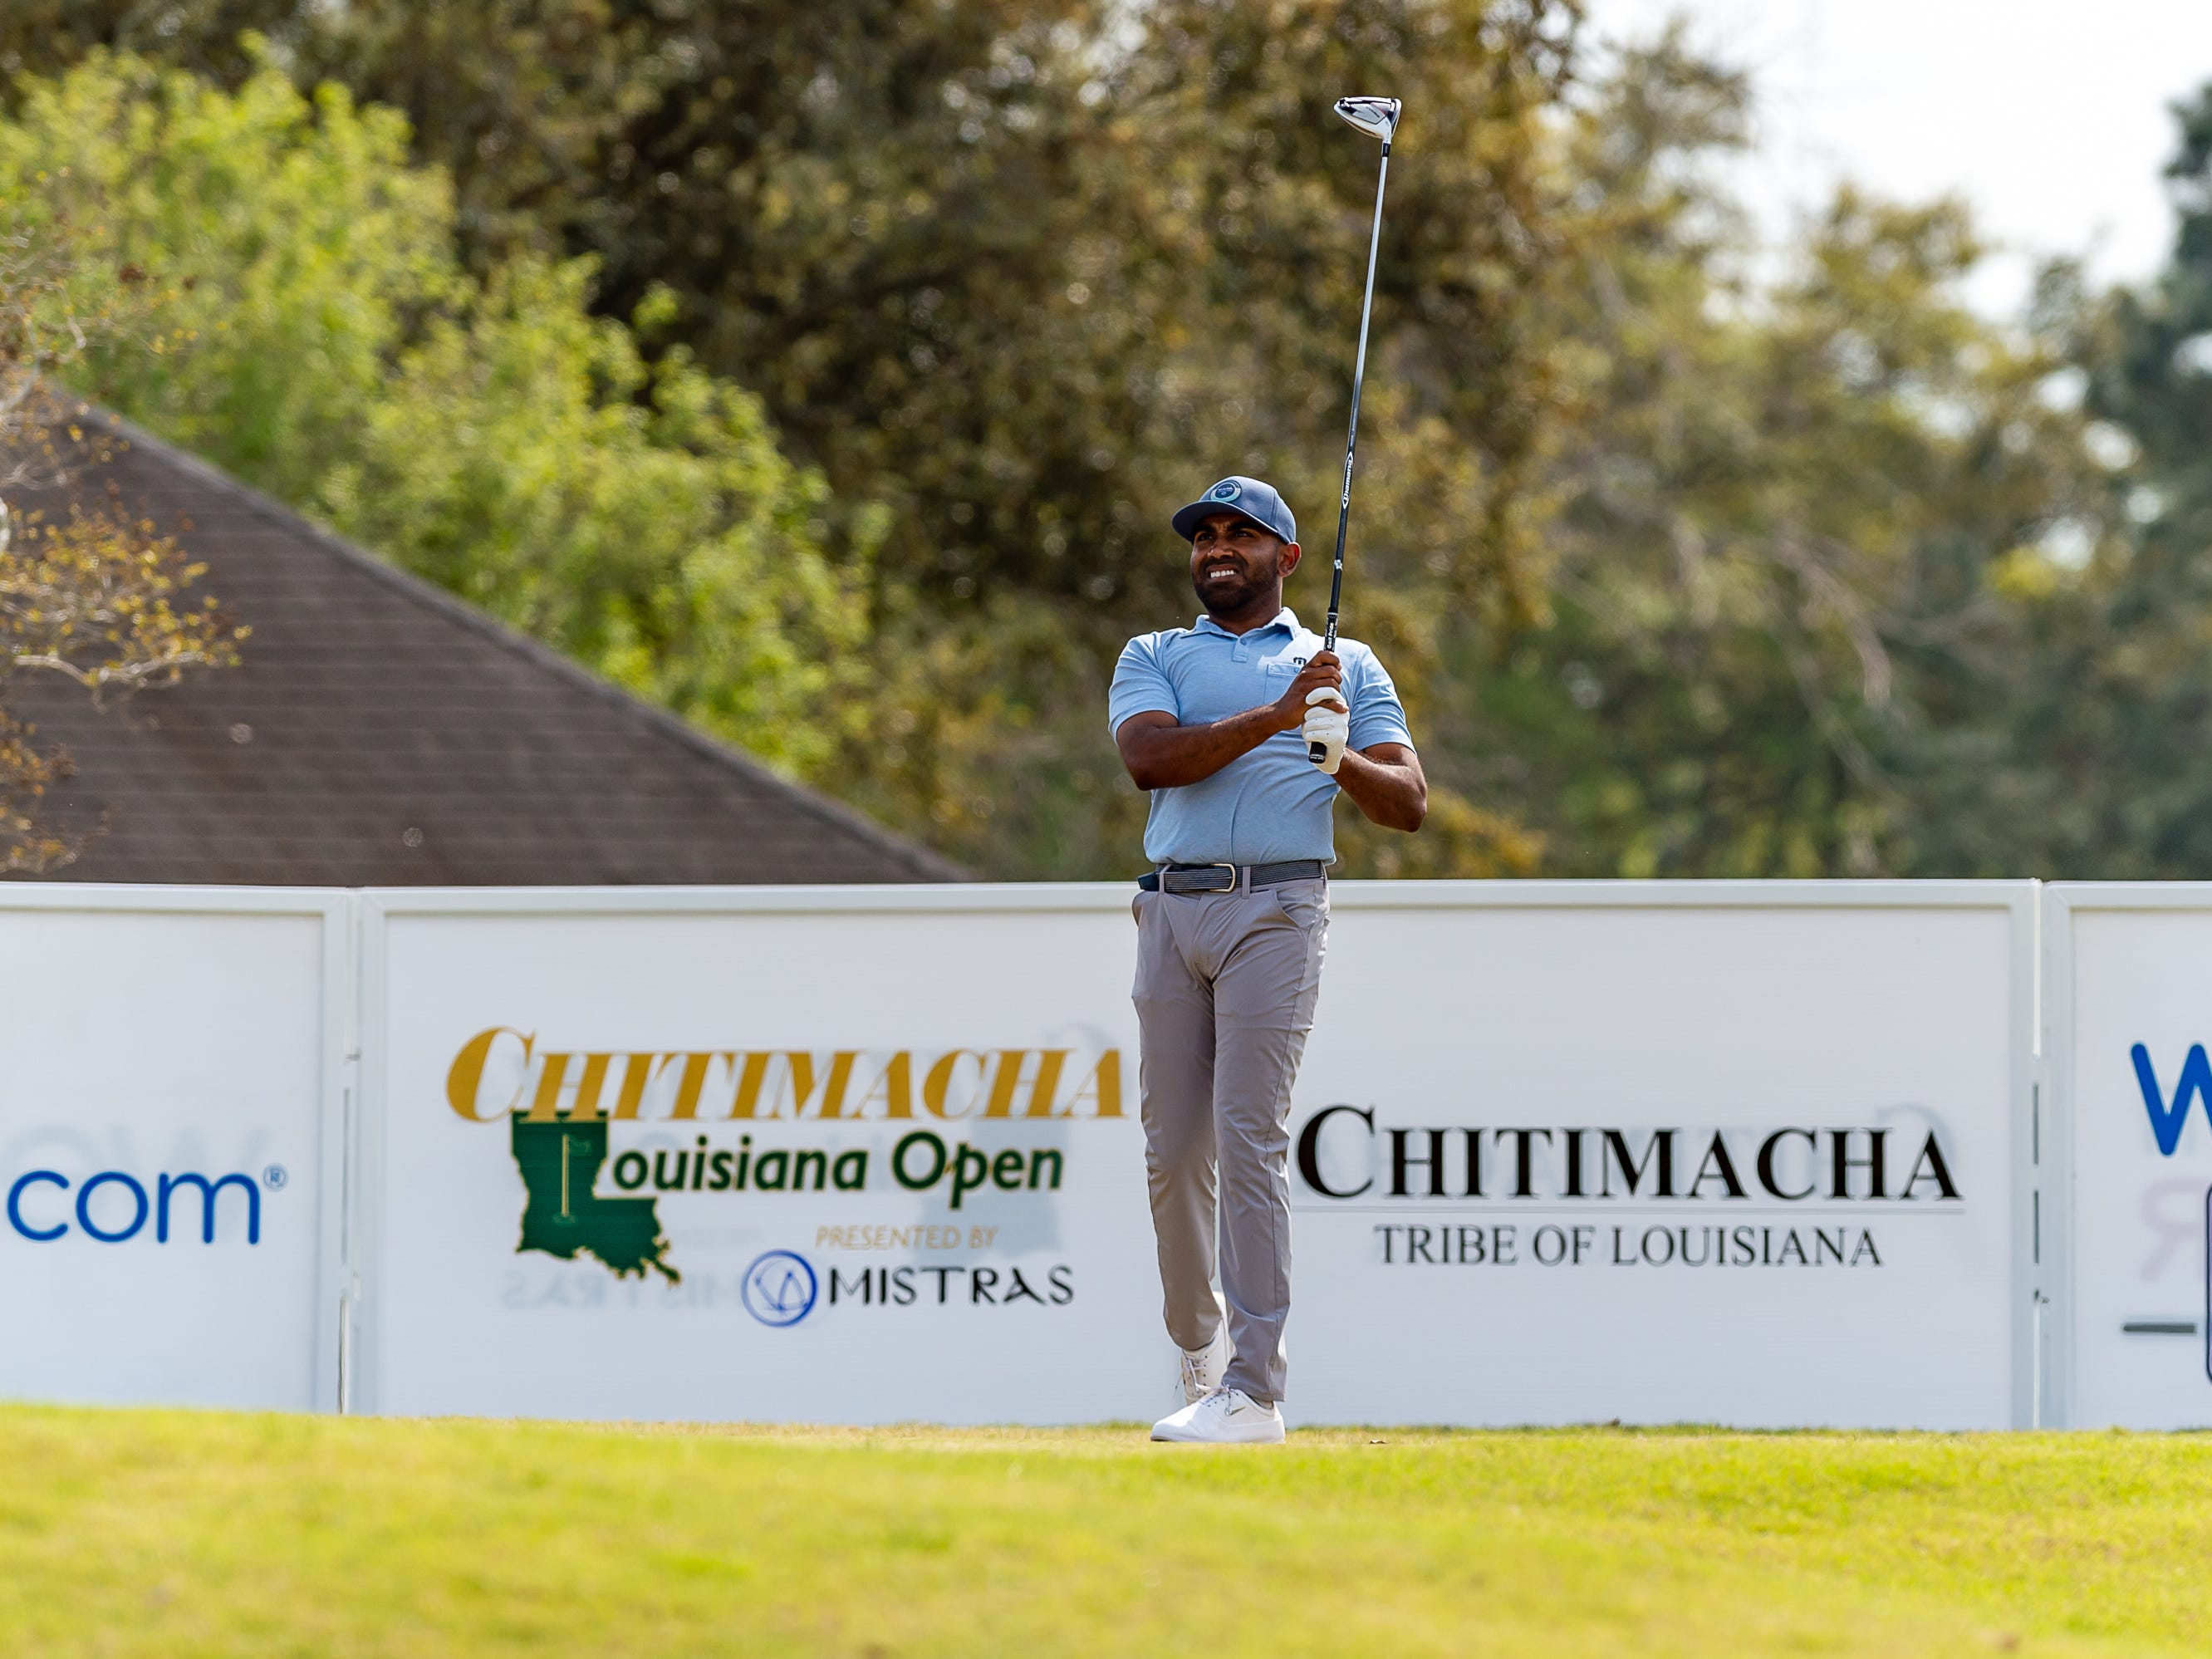 Bhavik Patel on the tee during the third round of The Web.com Tour in Lafayette for the 2019 Chitimacha Louisiana Open at Le Triomphe. Saturday, March 23, 2019.